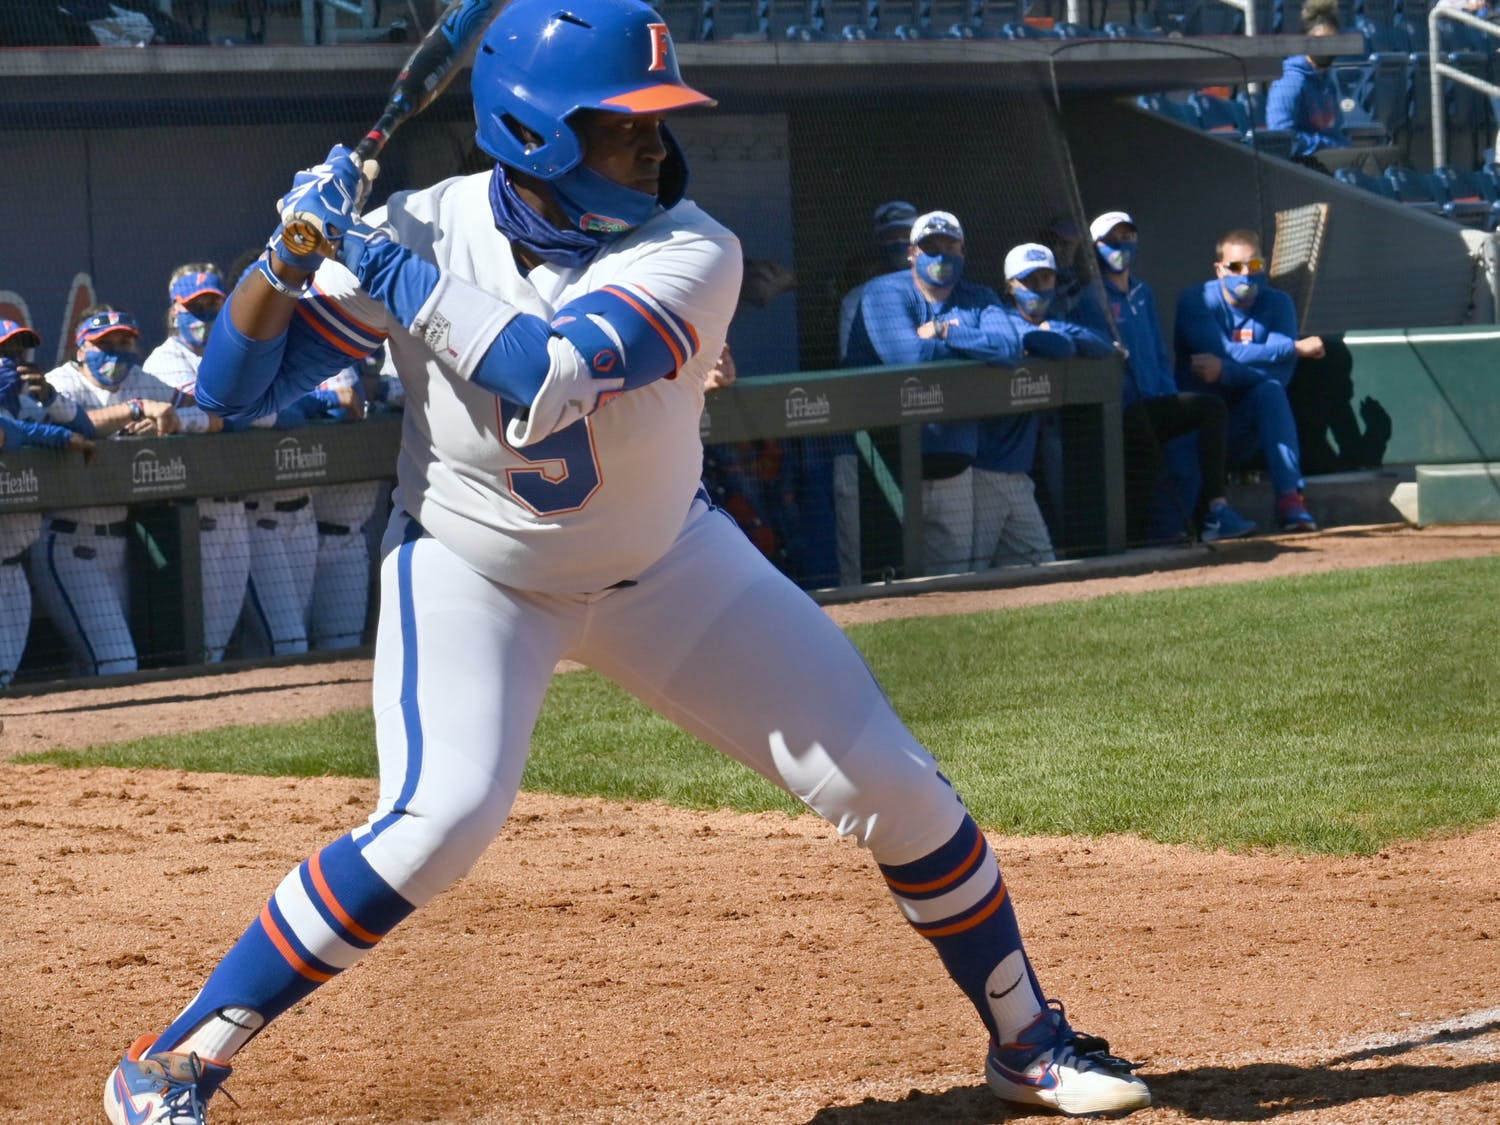 Left-fielder Jaimie Hoover recorded a double and a key put-out in Friday's victory against LSU.